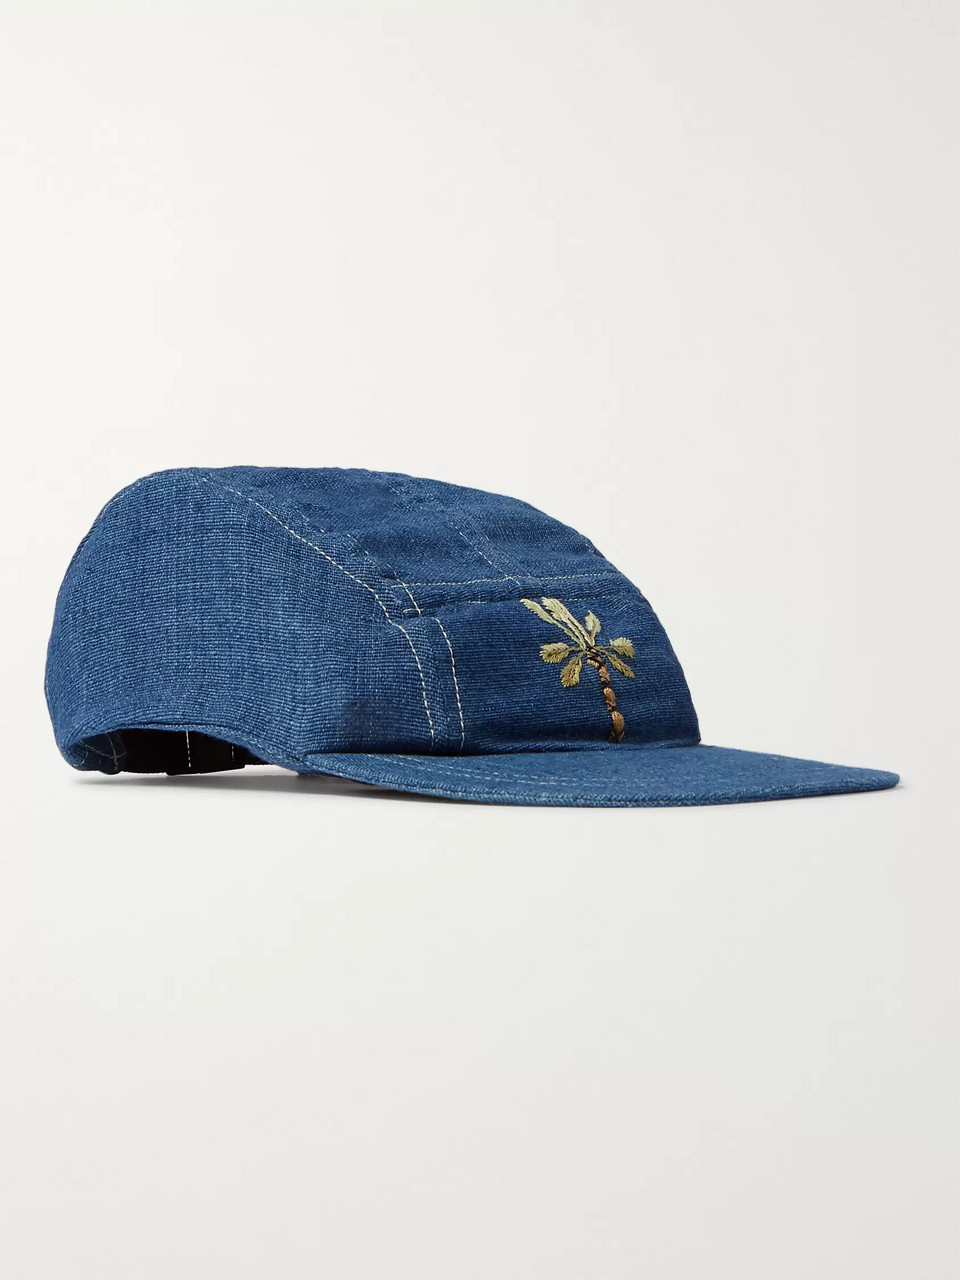 Story Mfg. Embroidered Organic Cotton Baseball Cap